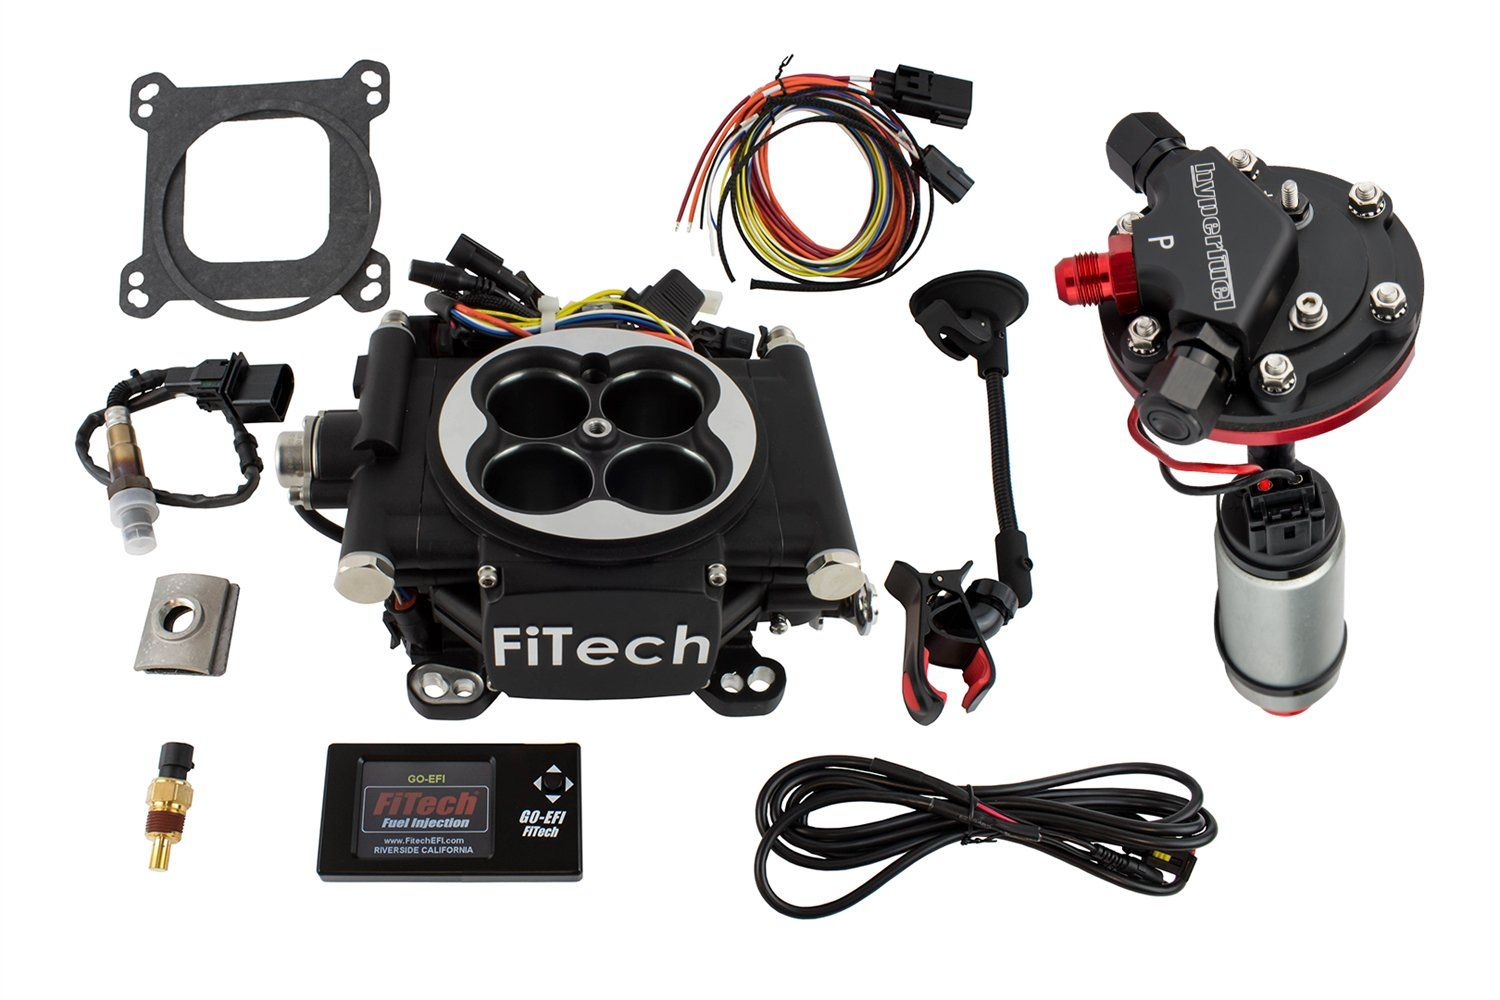 FITech Fuel Injection 38002 Fuel injection, Performance